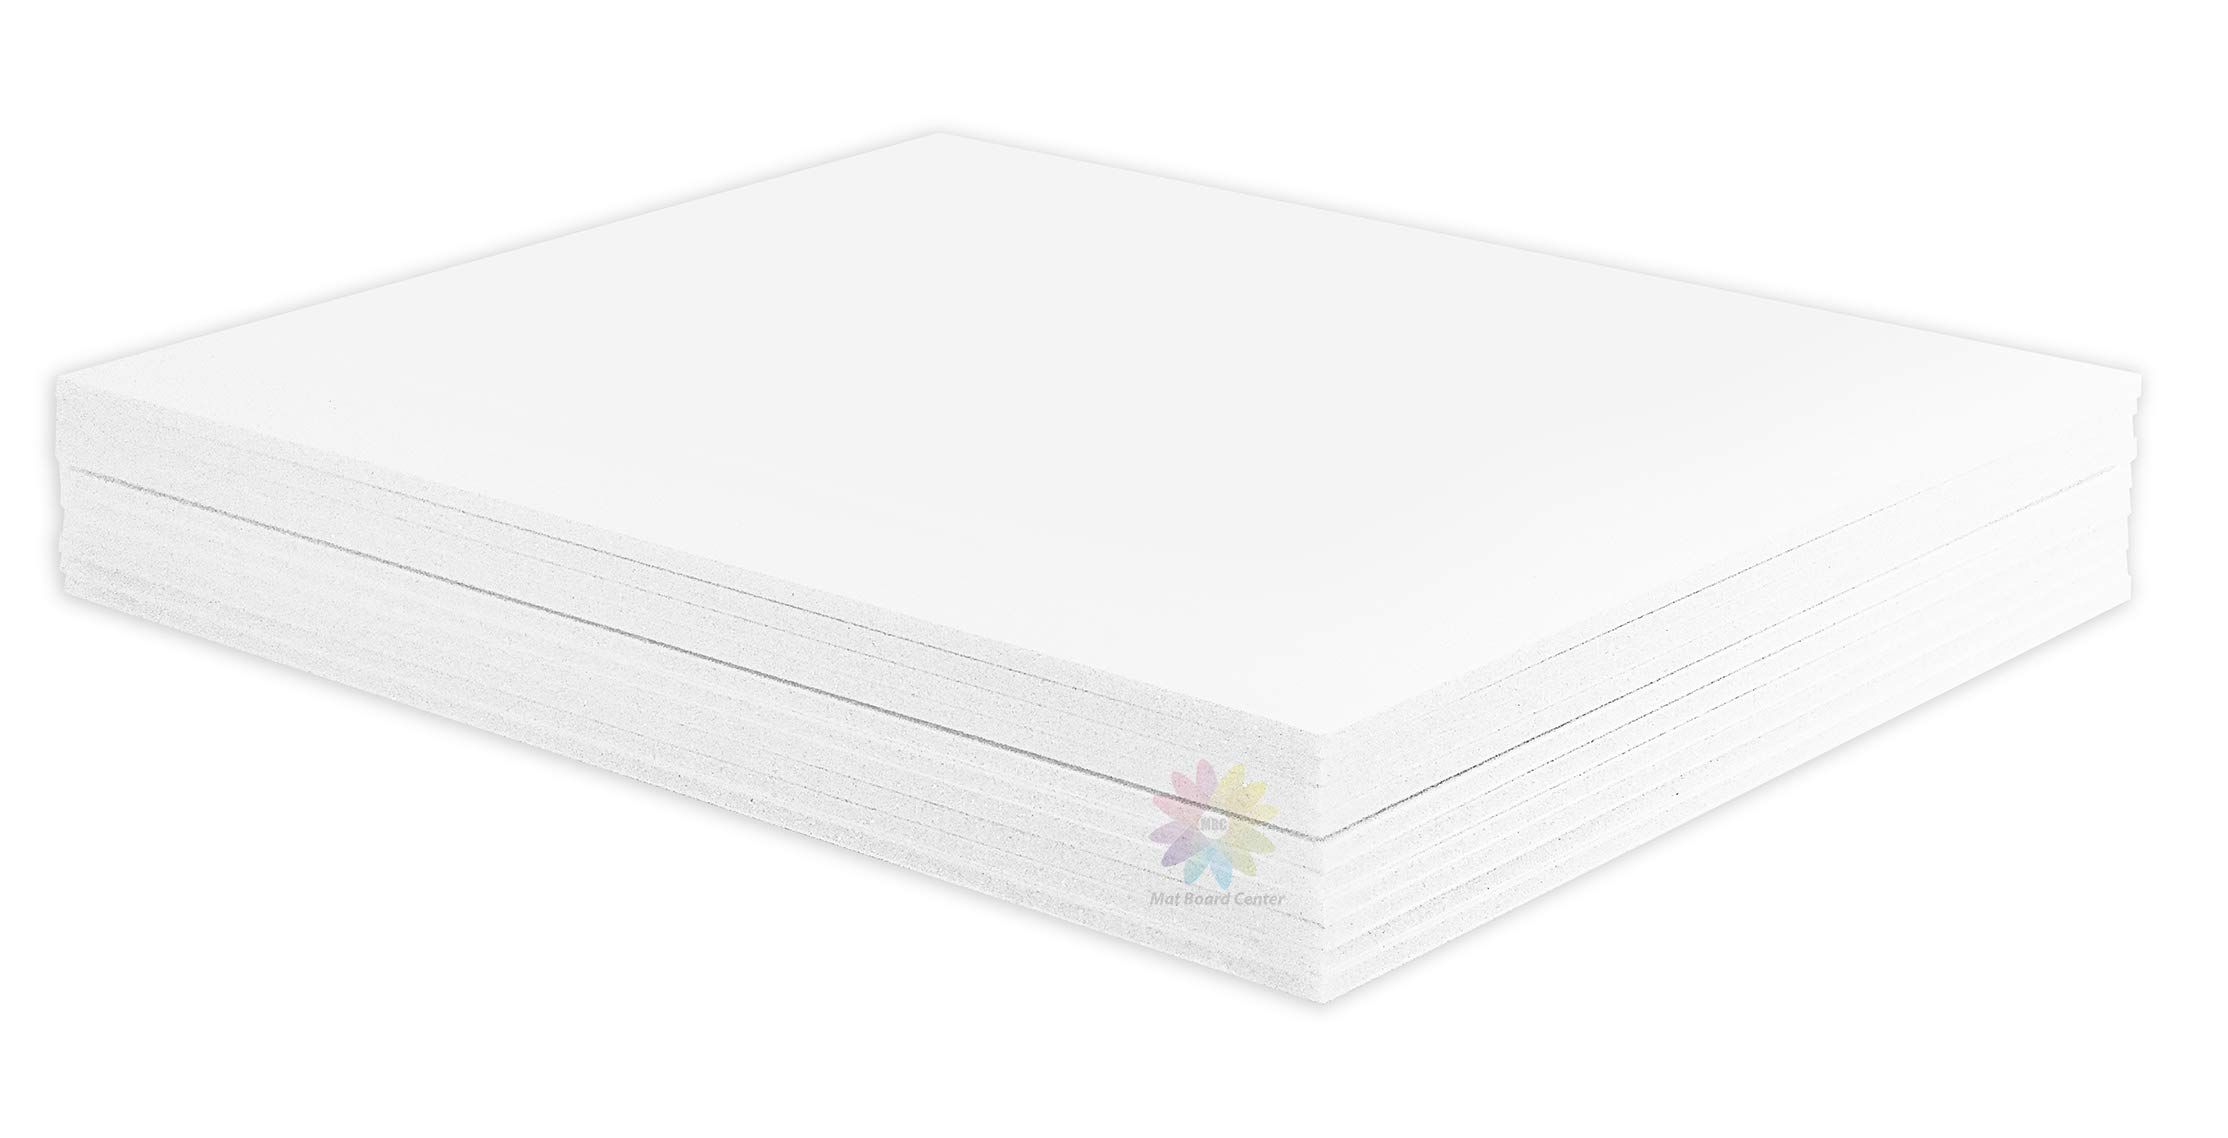 Mat Board Center, Pack of 10 11x14 1/8'' White Foam Core Backing Boards